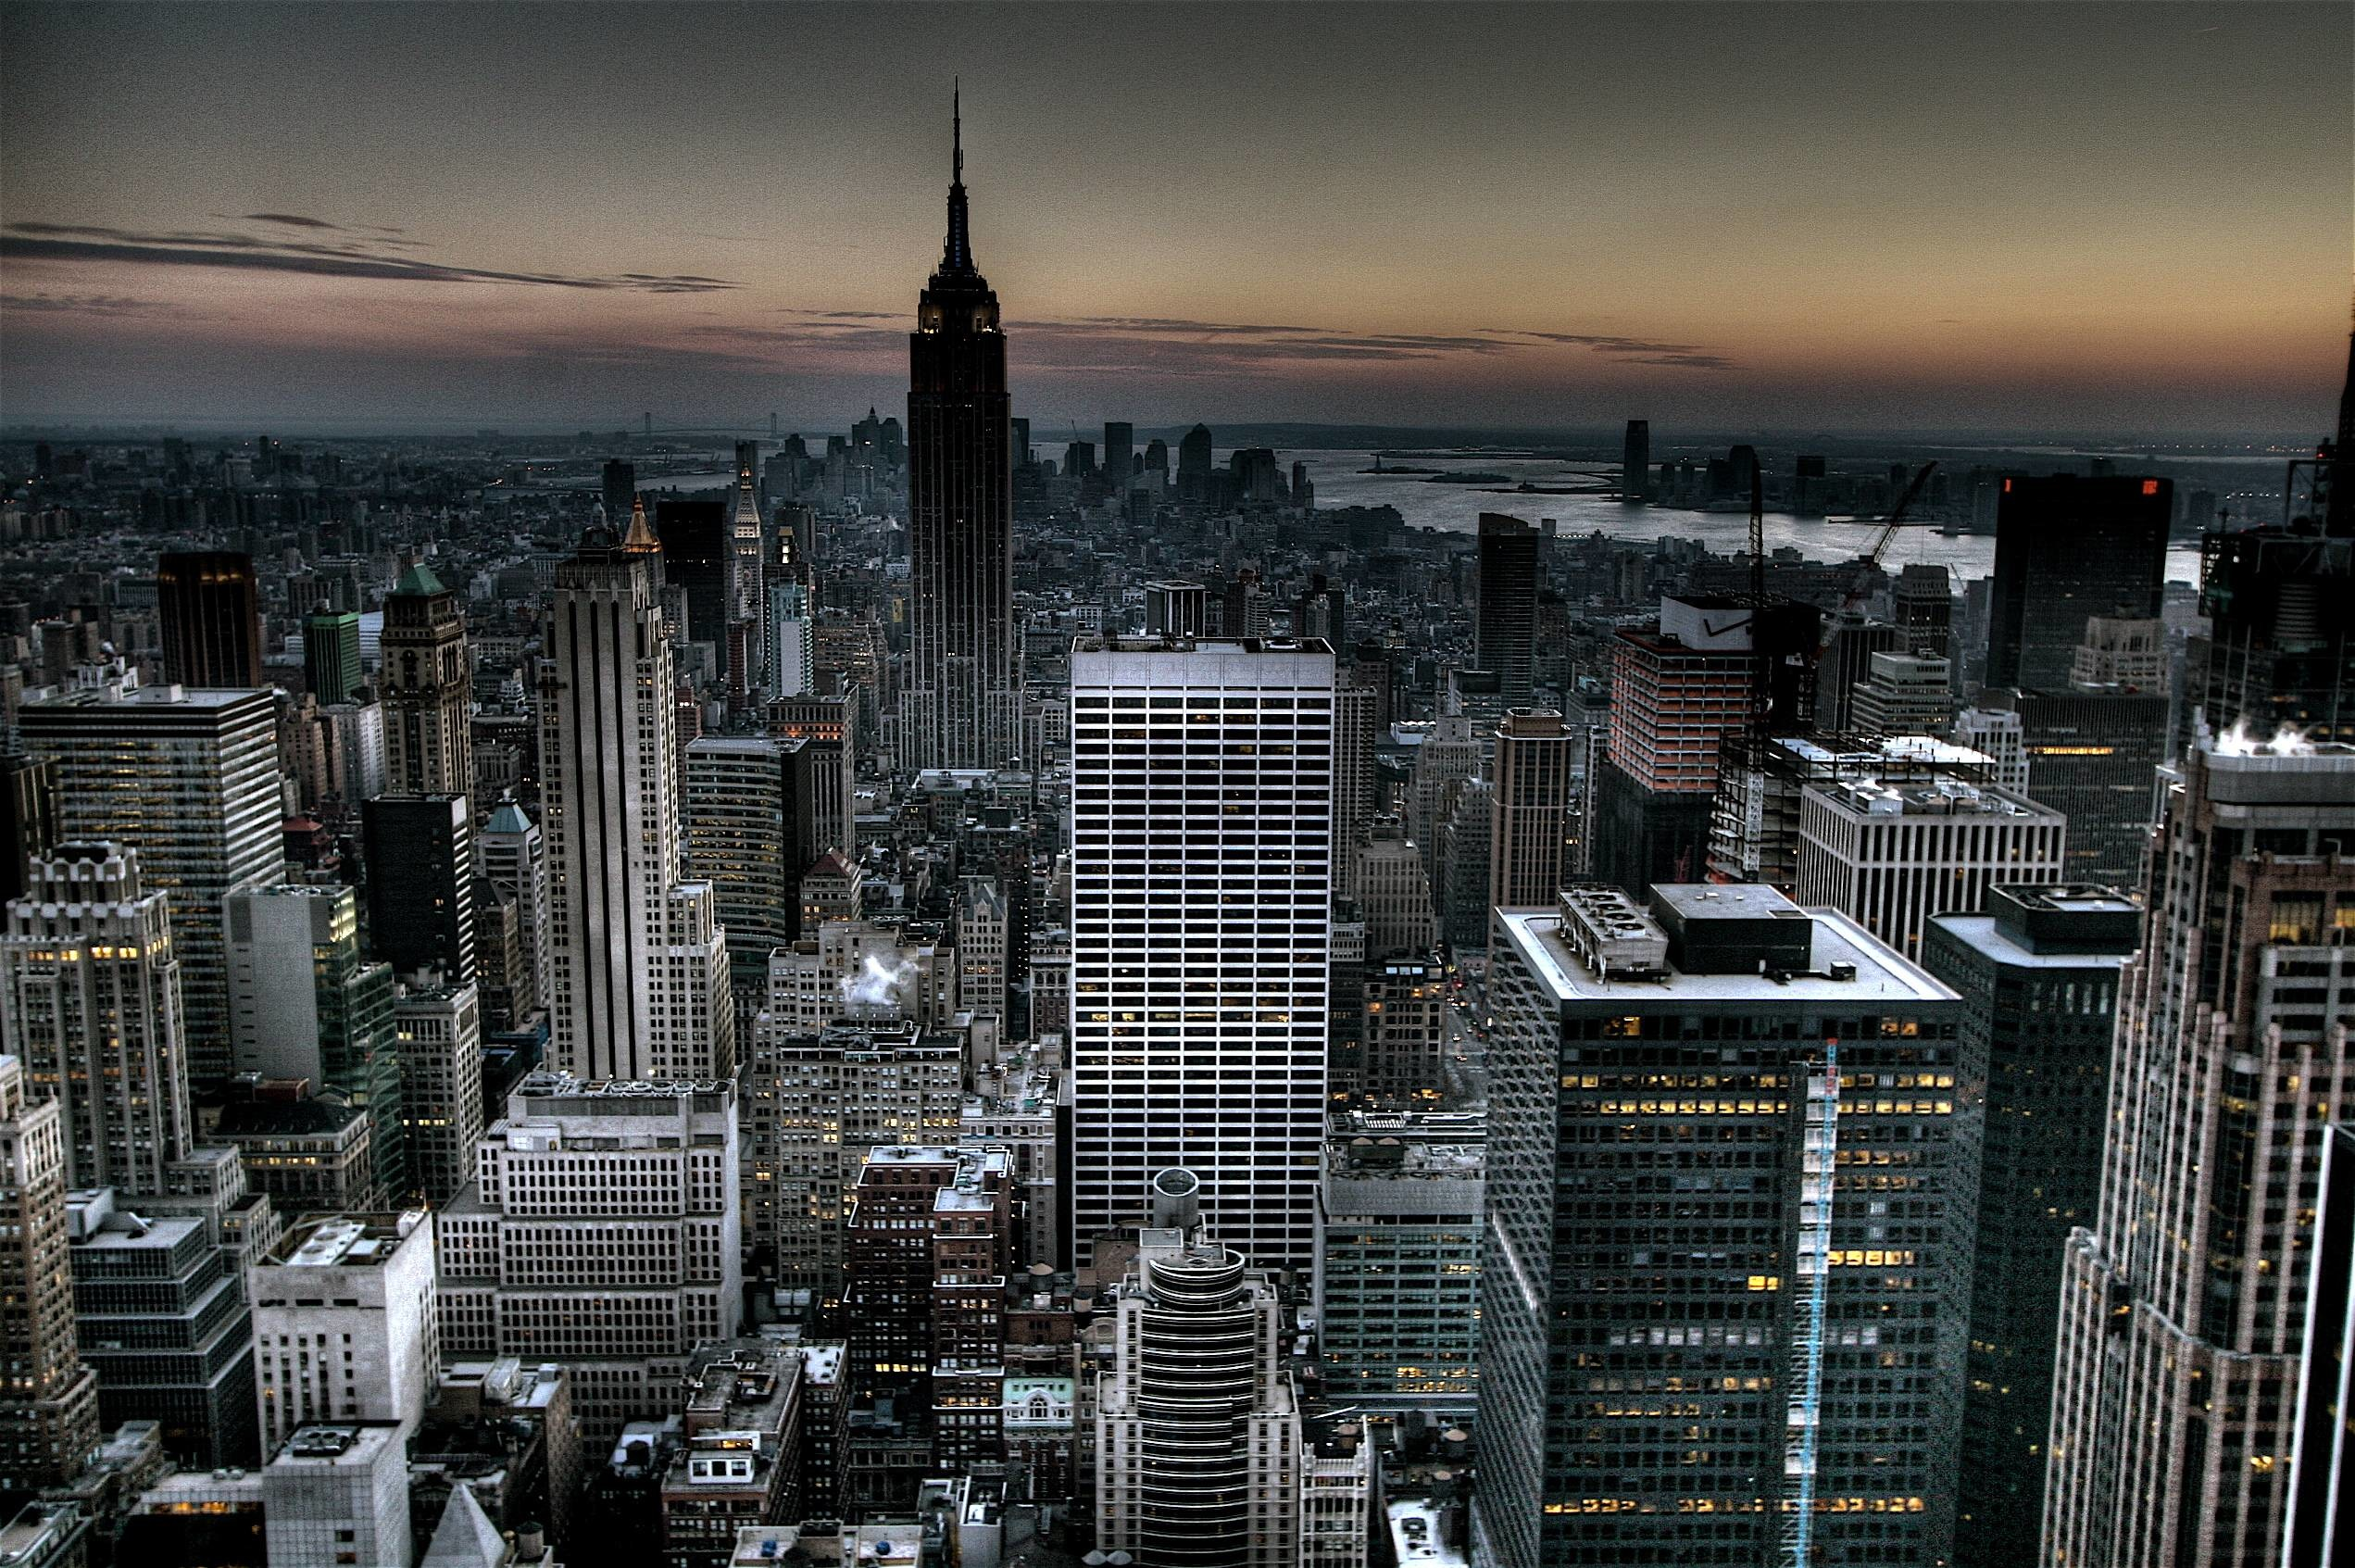 2543x1693 Hd New York City Wallpapers and Background